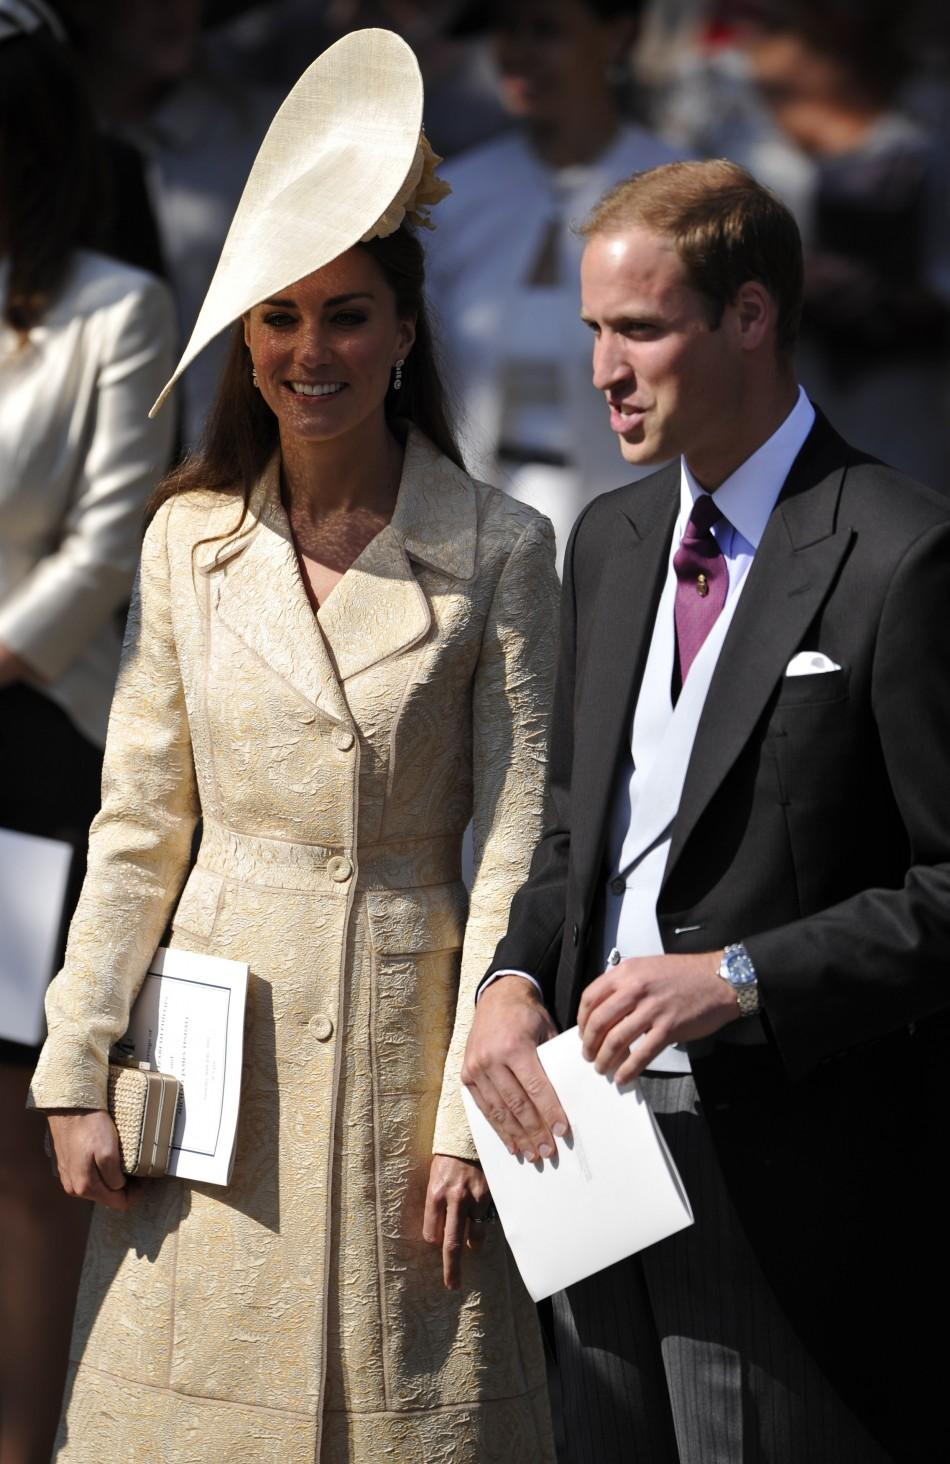 Kate Middleton in Beige-looking coat at Zara Phillips and Mike Tindall's wedding